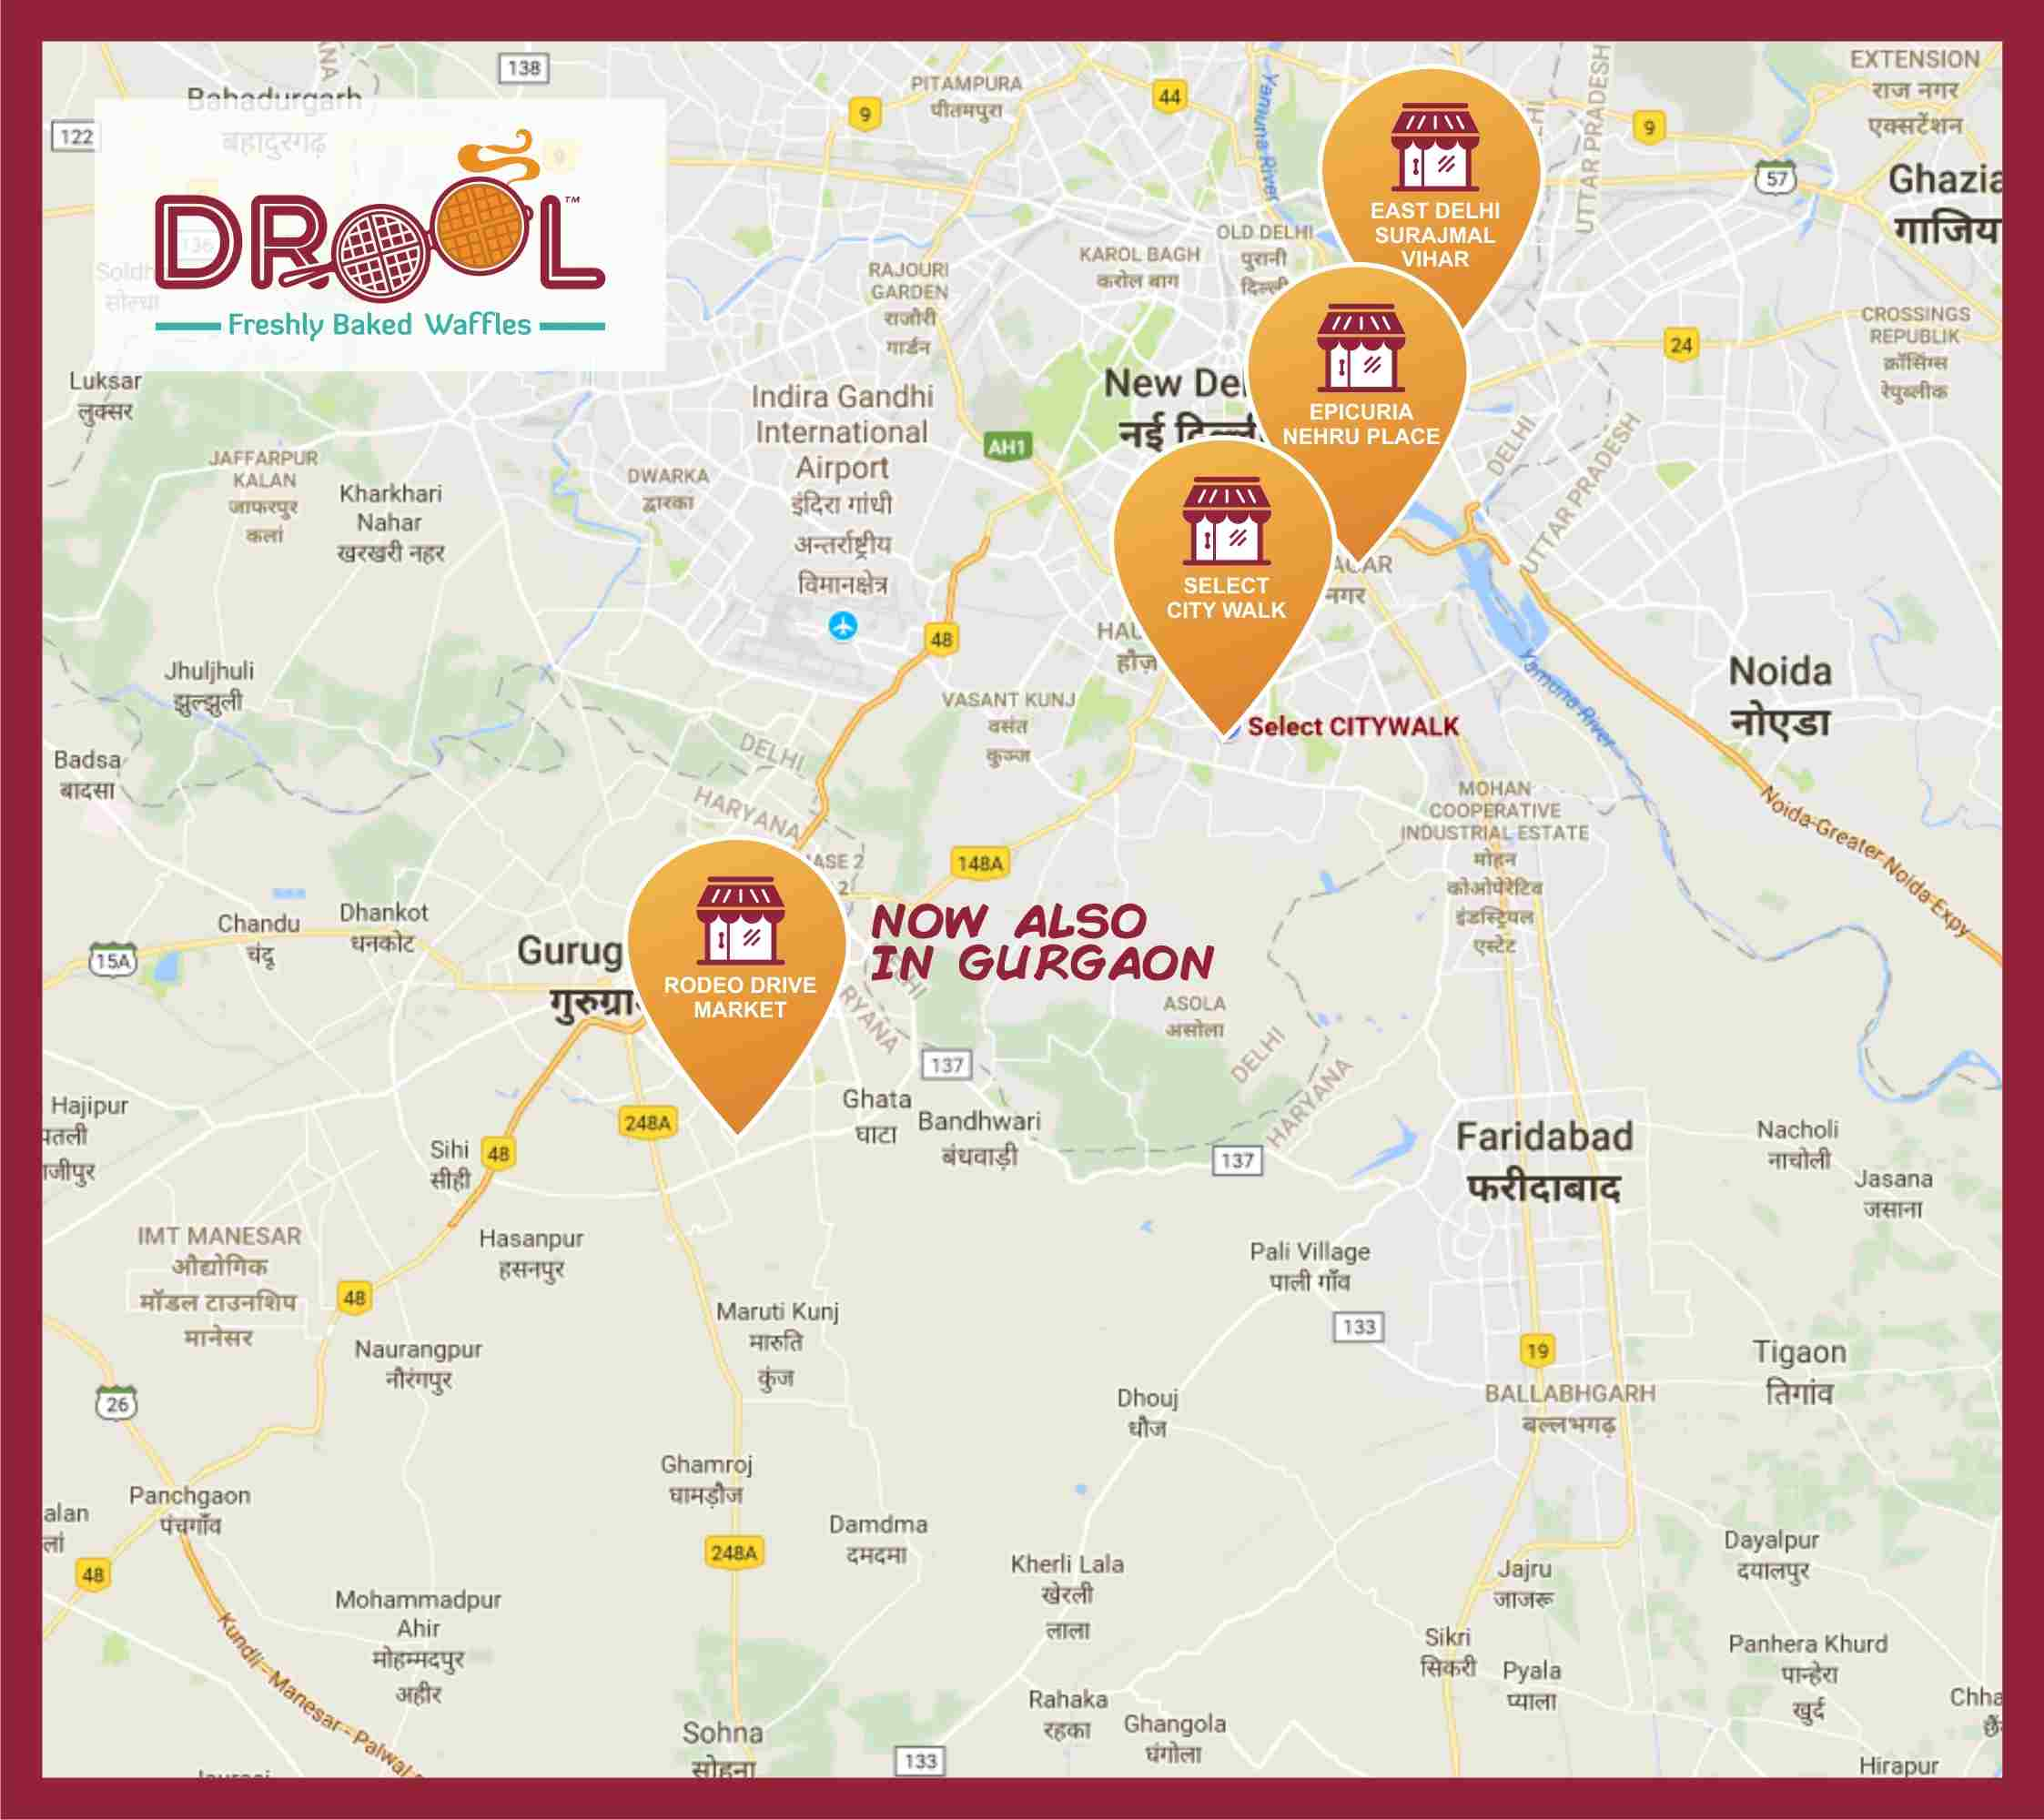 Drool Waffles-gurgaon-delhi-LOCATION